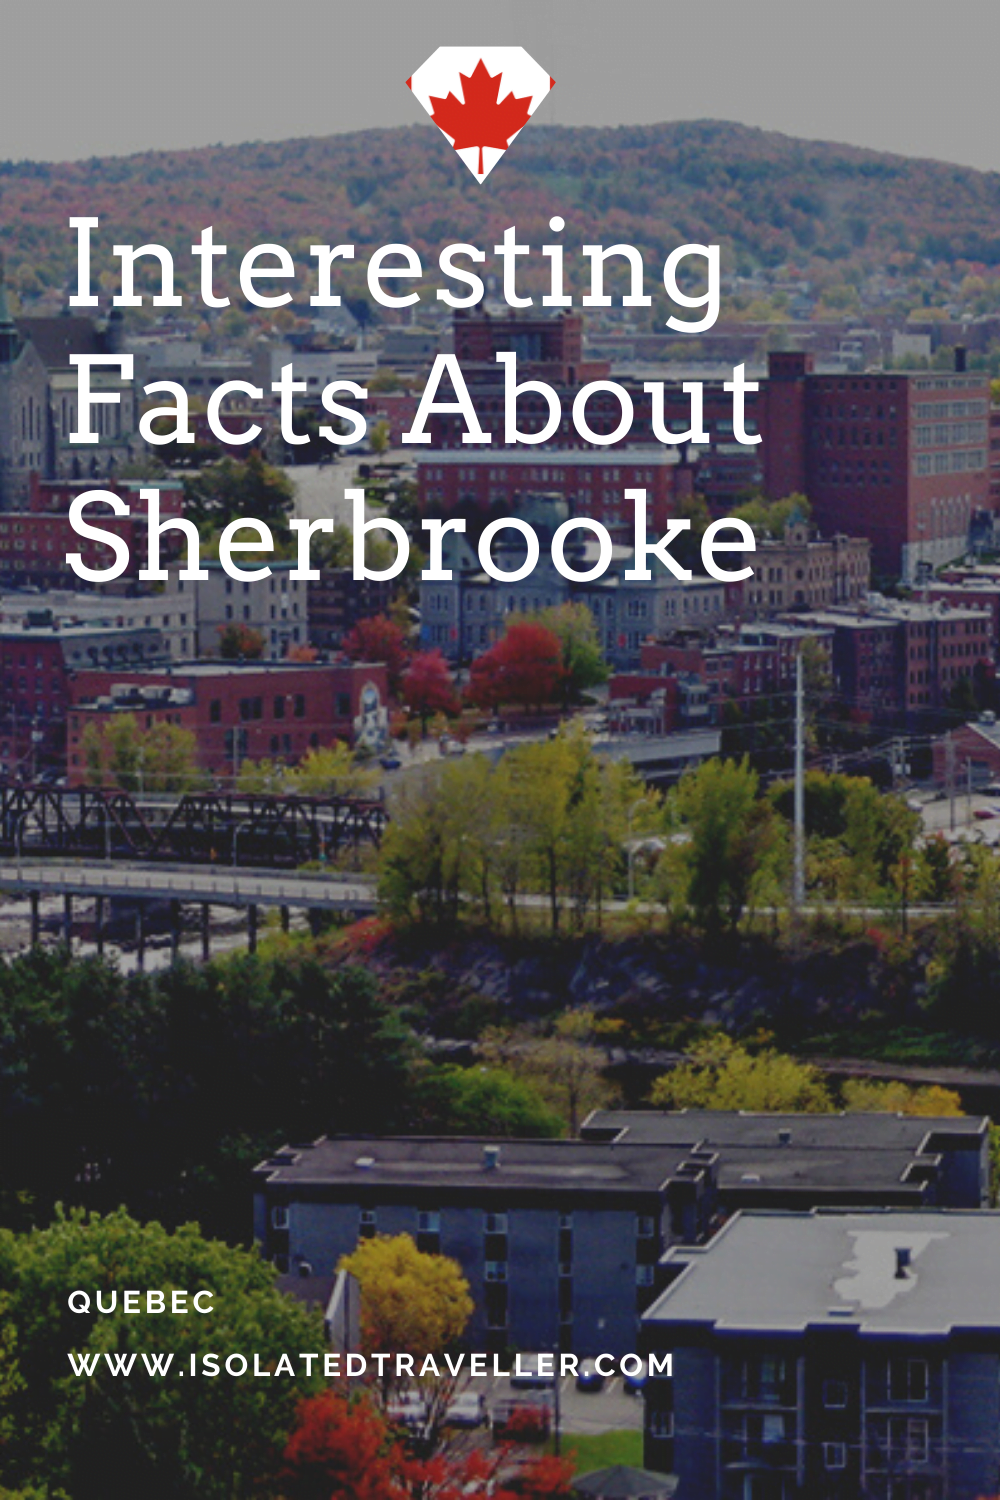 Facts About Sherbrooke